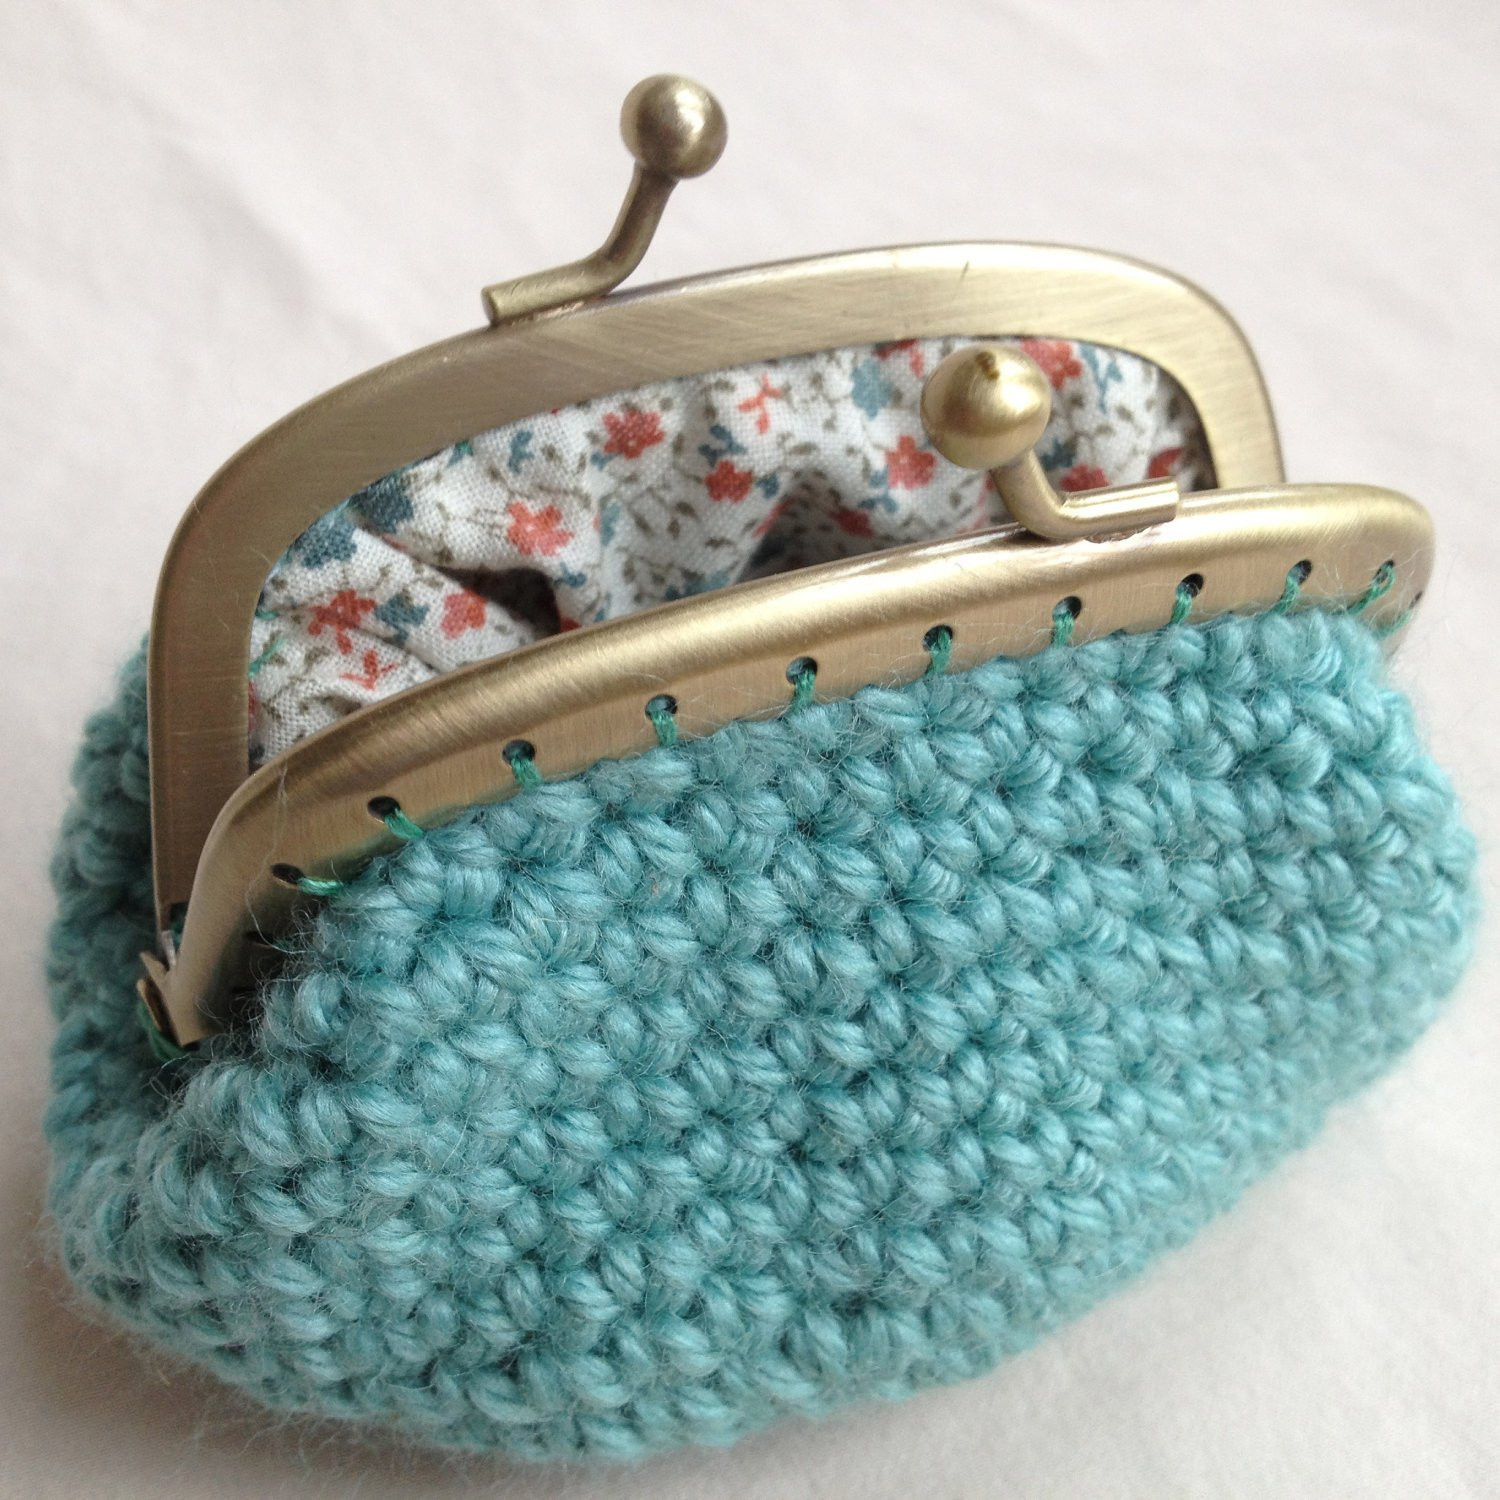 Crochet Pouch Fresh Sea Green Crochet Coin Purse Of Awesome 48 Pics Crochet Pouch